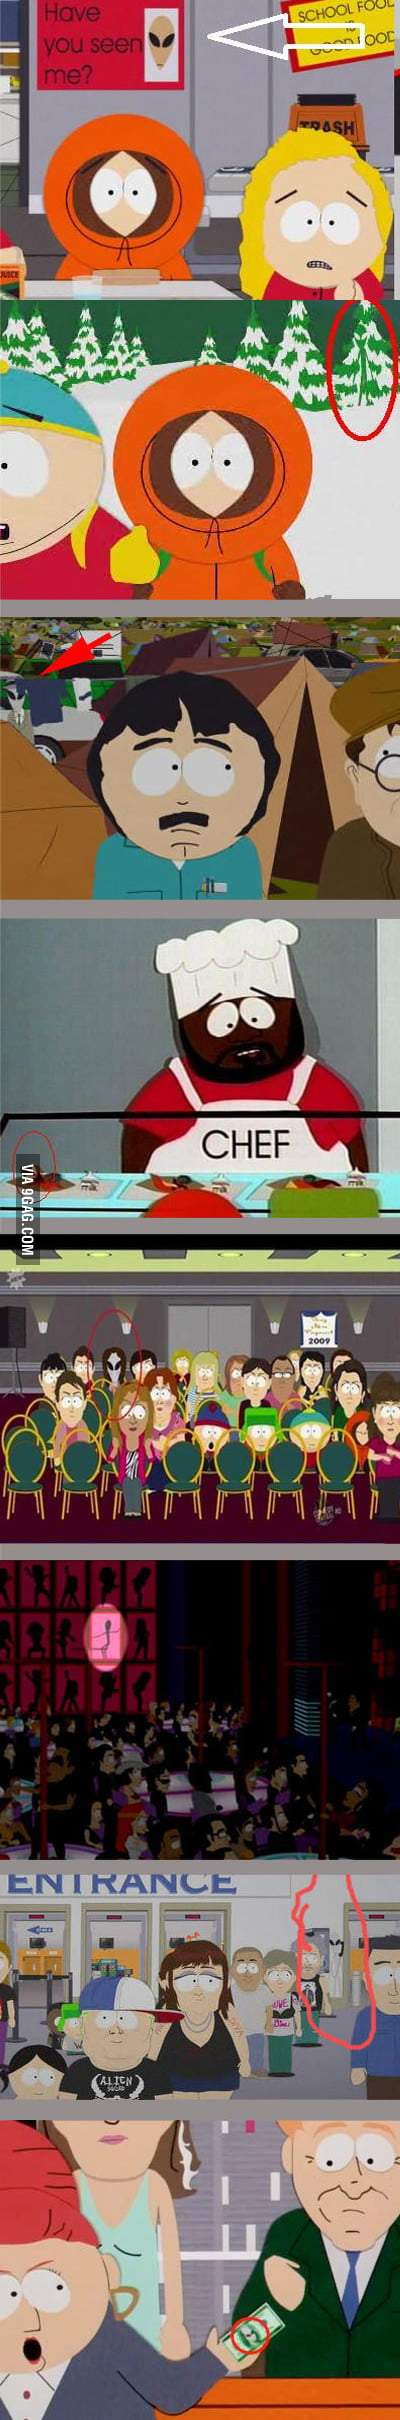 Hidden Aliens in South Park